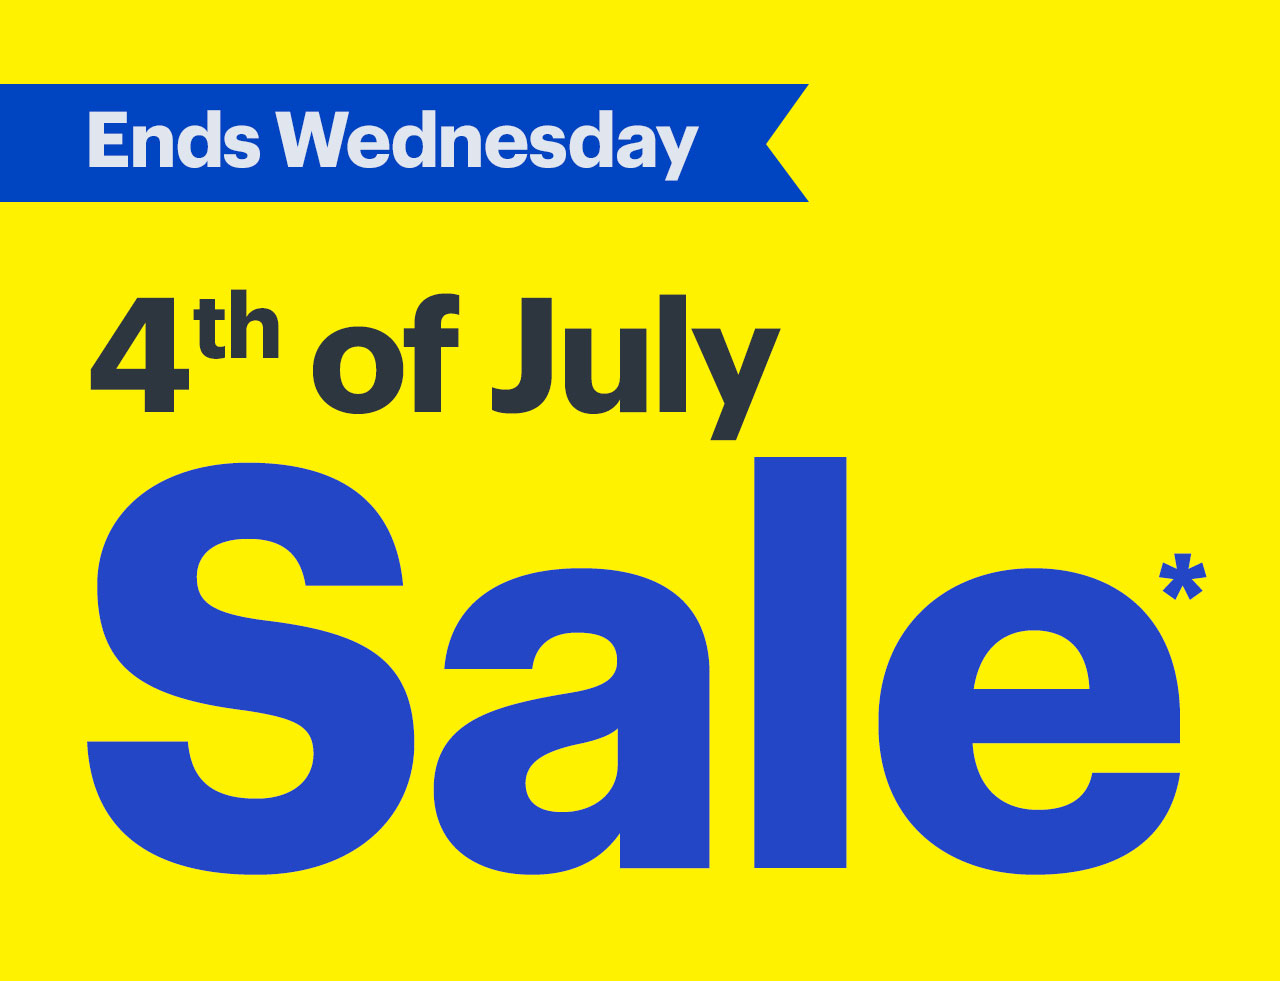 Shop the 4th of July Sale*